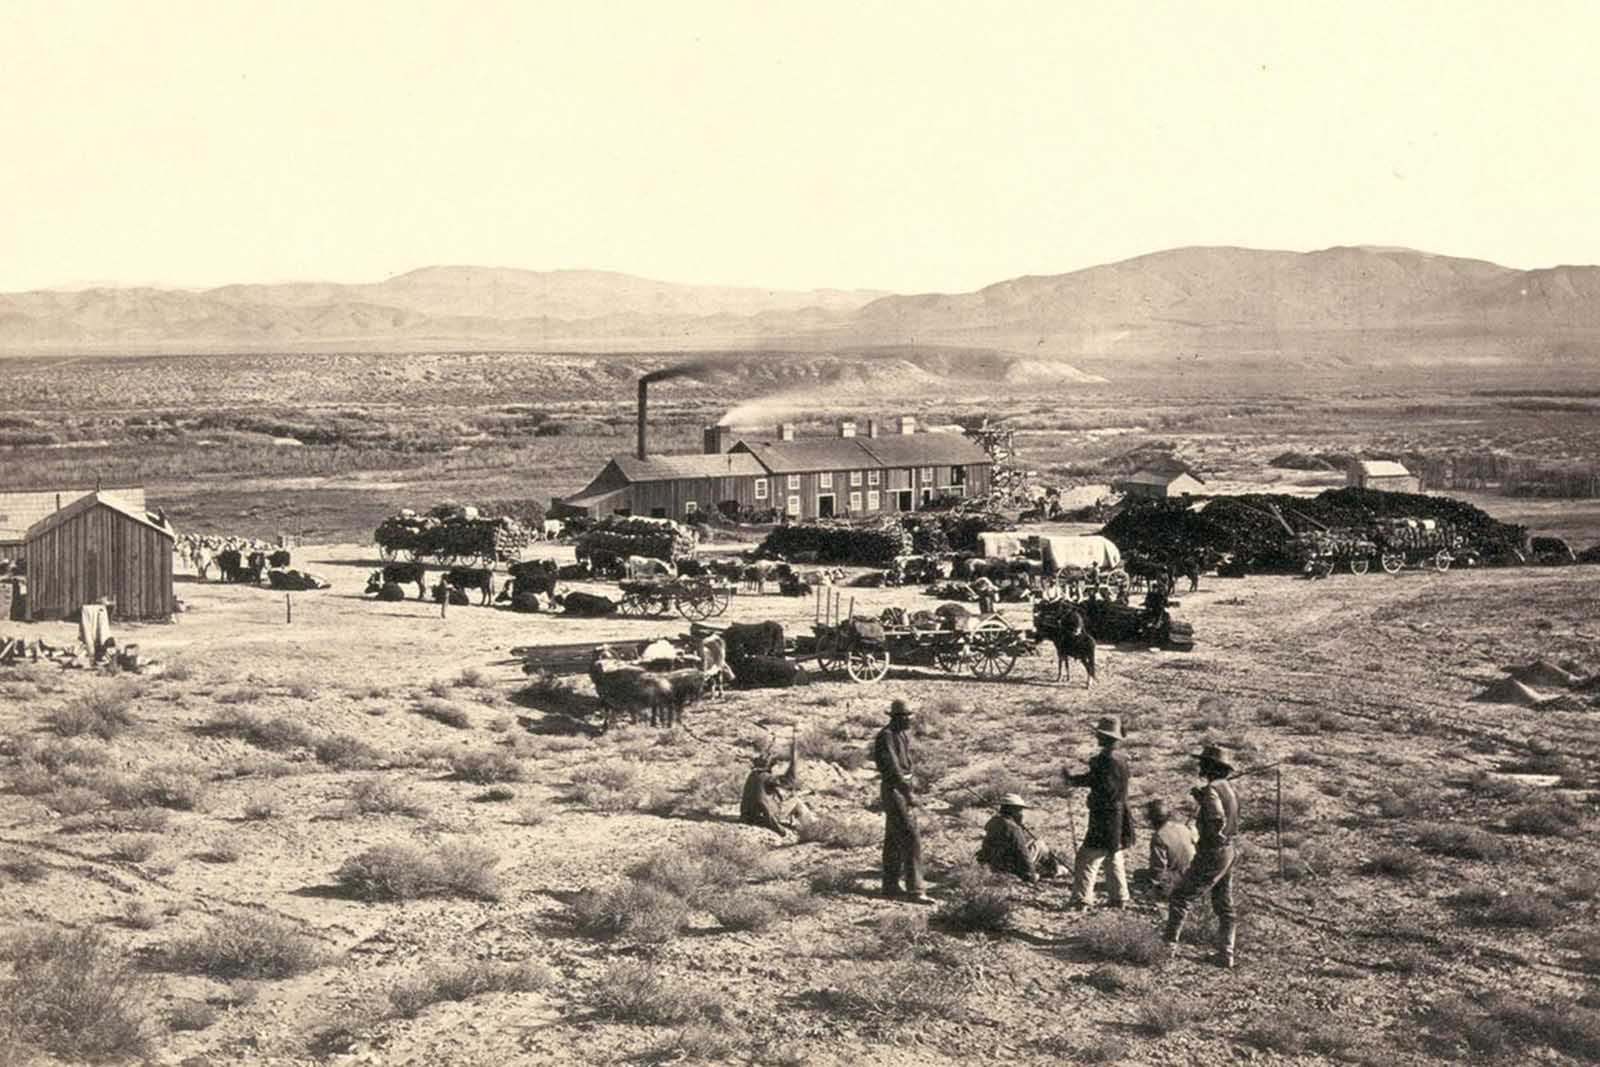 Members of Clarence King's Fortieth Parallel Survey team, near Oreana, Nevada, in 1867.